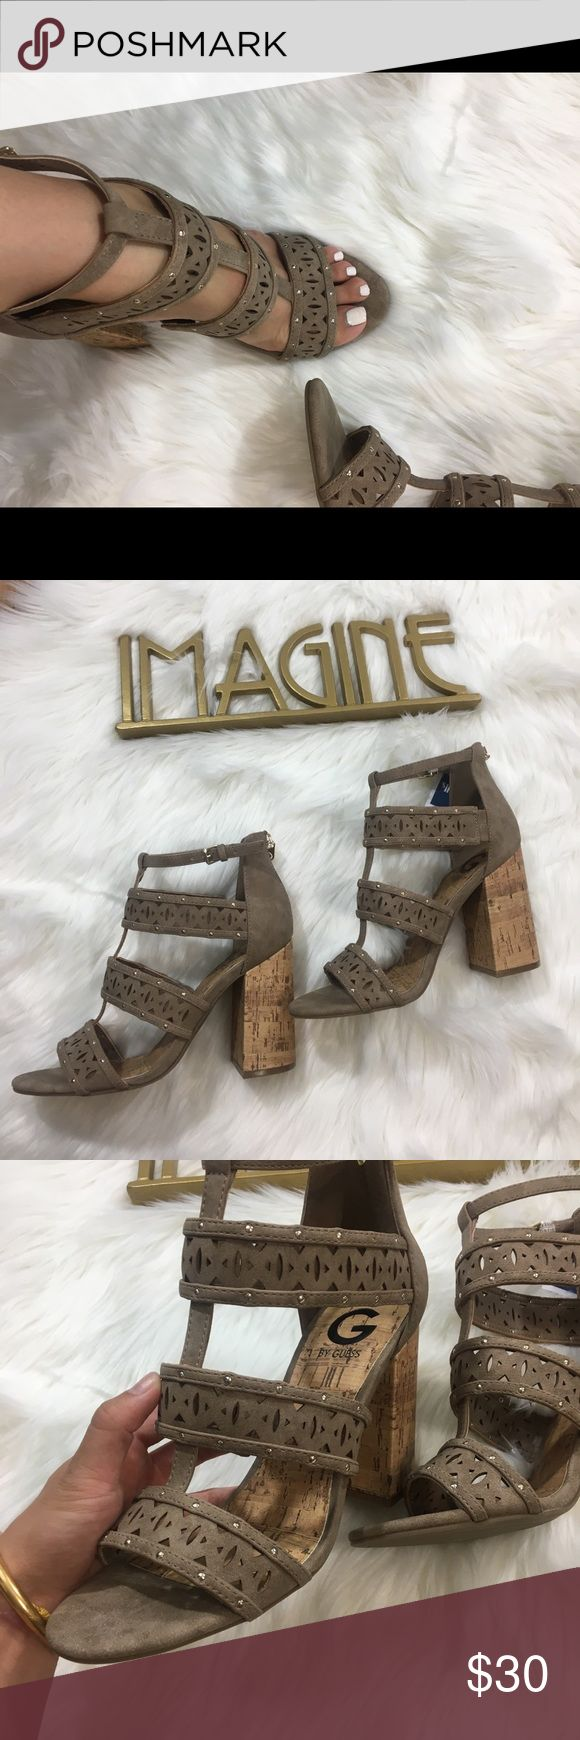 Guess Tan Chunk Cork Heels SIZE 9 NWT✨💓✨ Tan Chunky Heel Guess shoe perfect color for fall with a jean jacket! Dress up or down✨✨💓✨💓✨✨ SIZE 9 NEW WITH TAGS Guess Shoes Heels